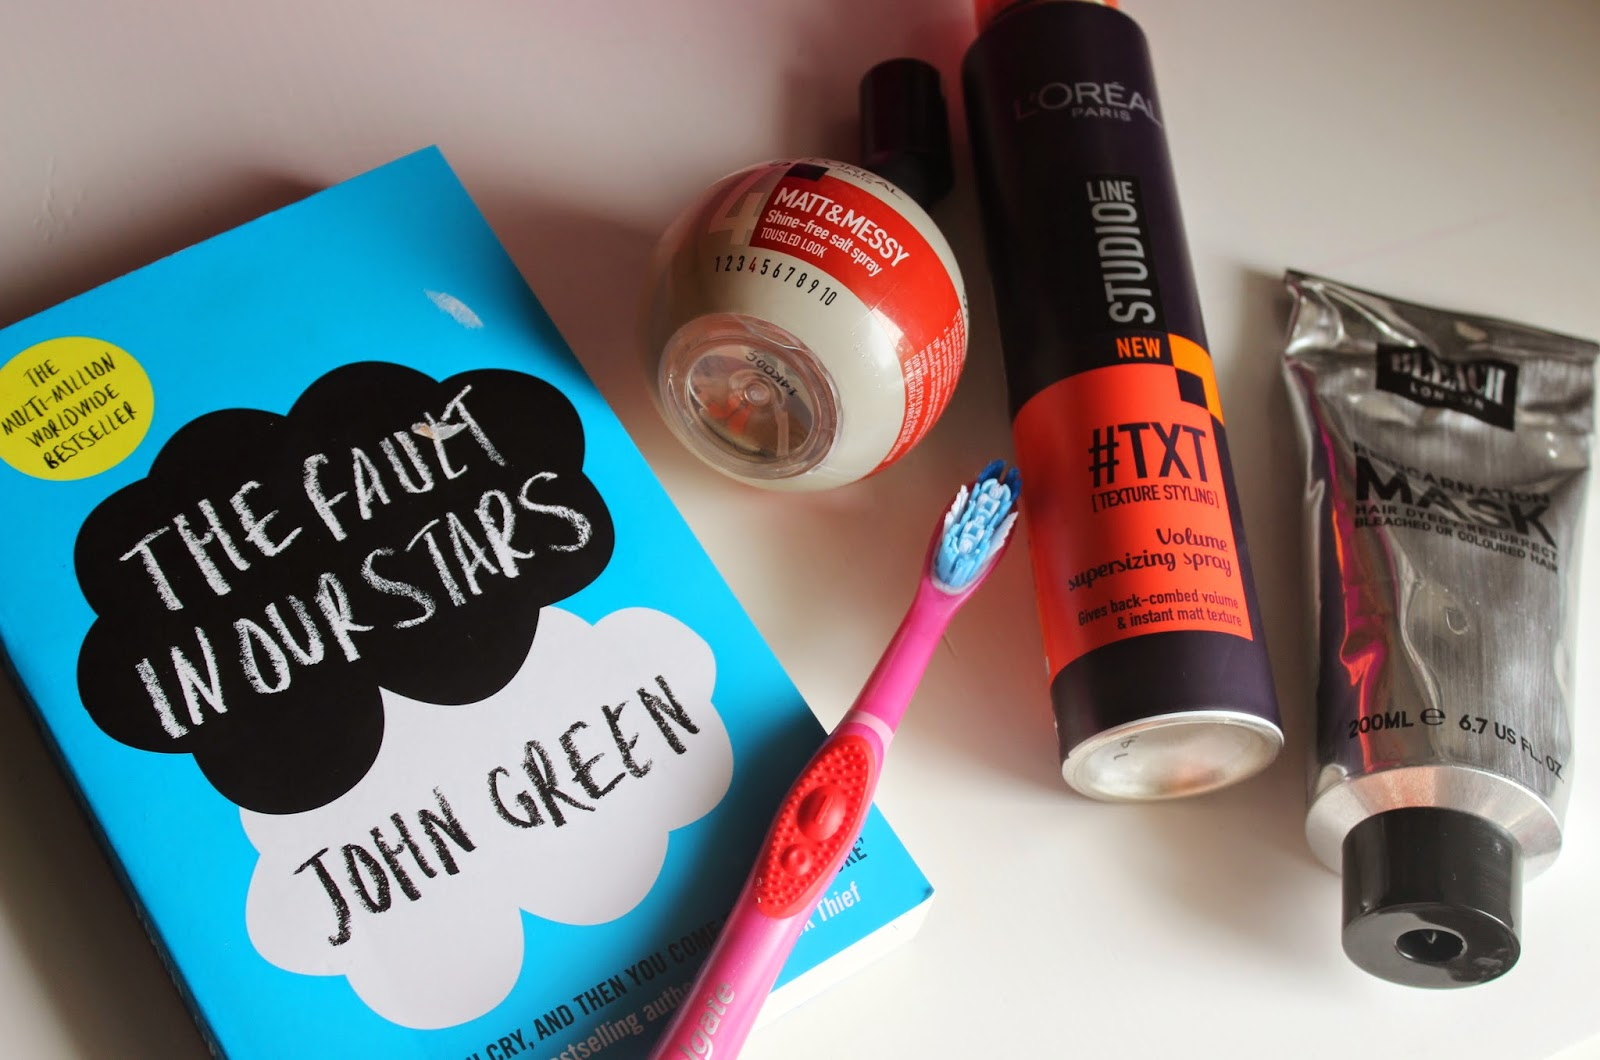 MINI HAUL FEATURING THE FAULT IN OUR STARS BOOK